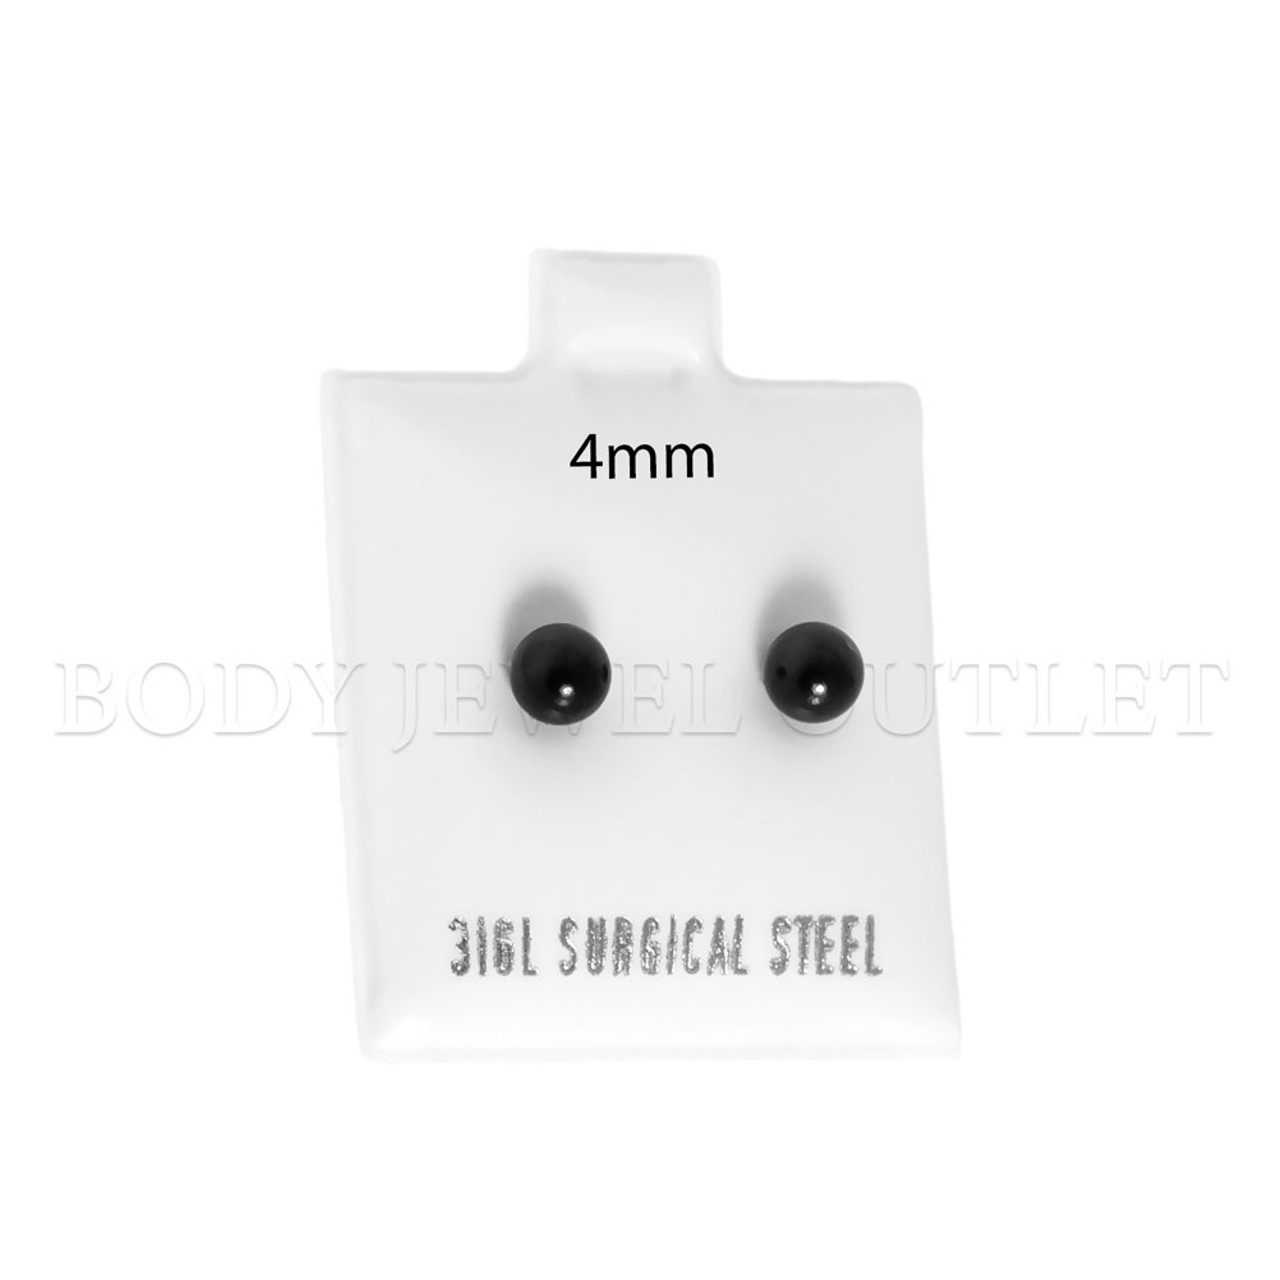 4mm Black IP Ball Stud - 316L Stainless Steel Earring - Pair (2 Pieces)